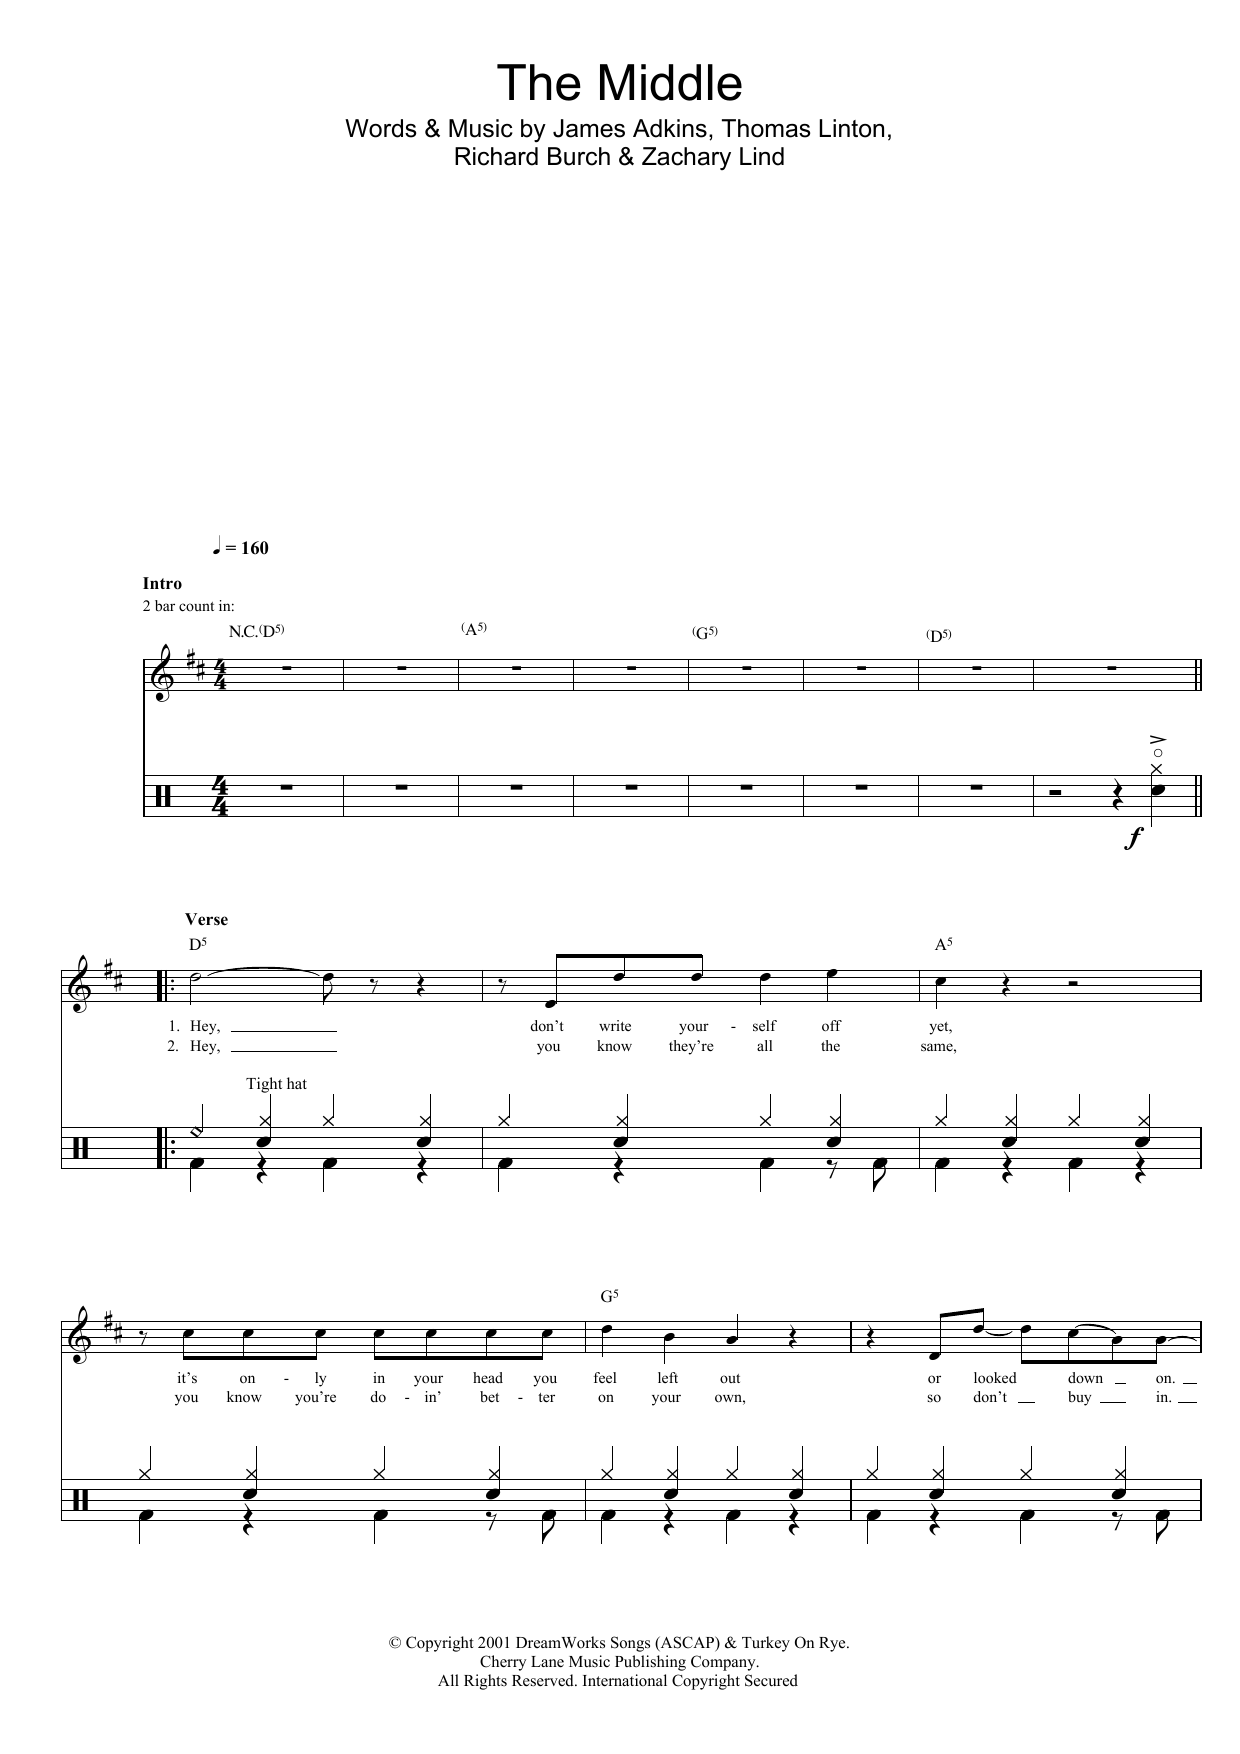 The Middle Sheet Music Direct